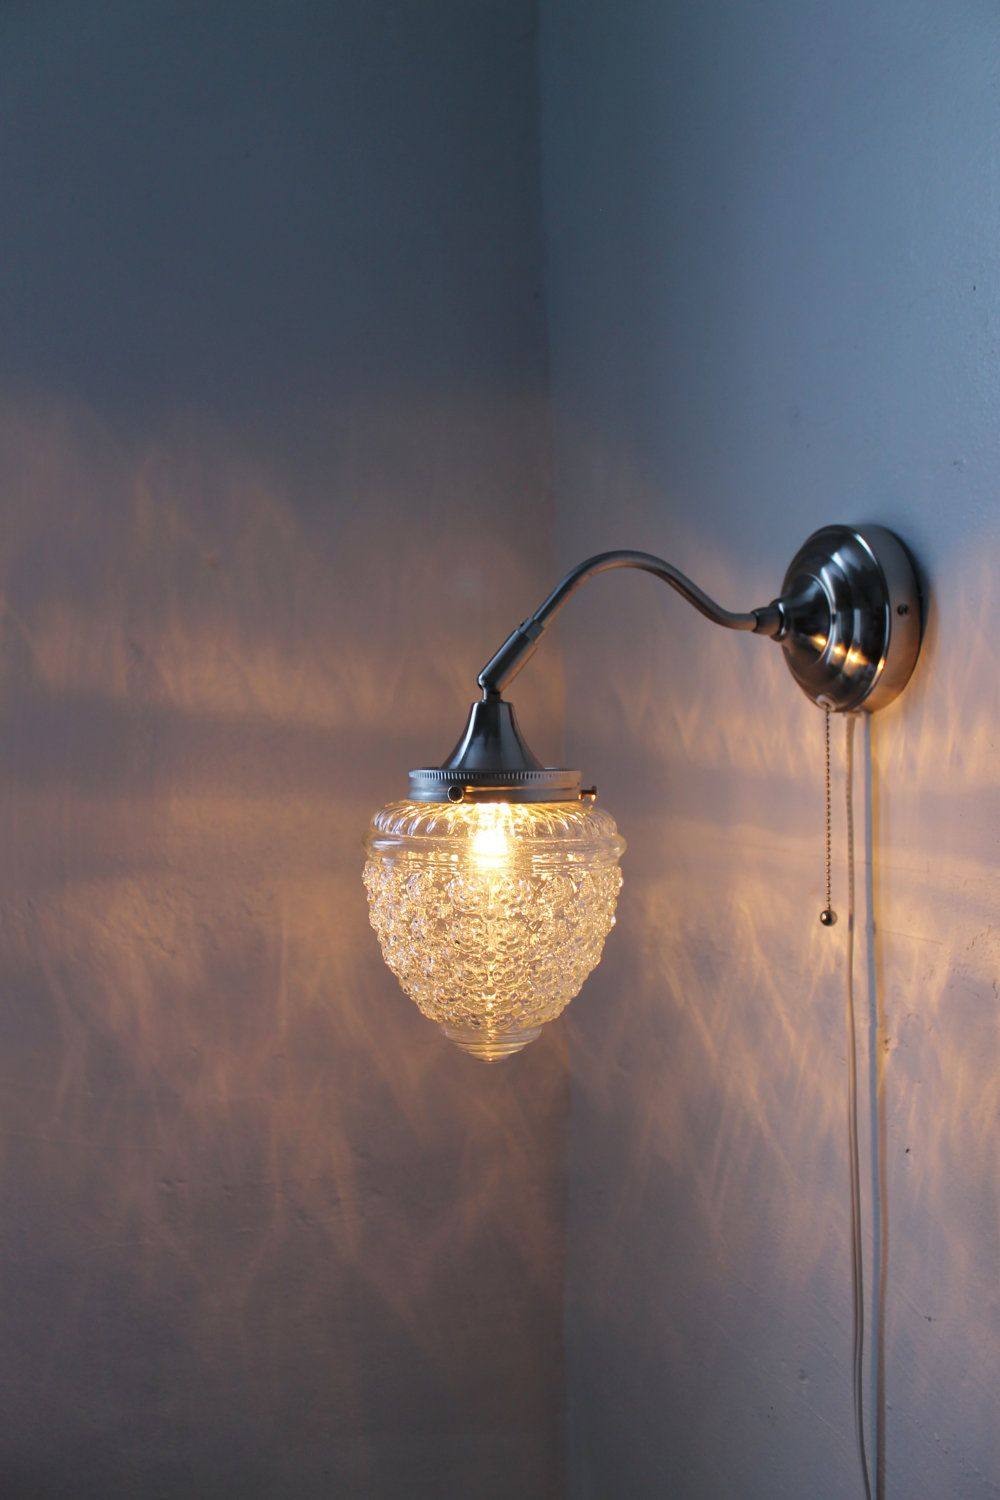 Wall Sconce Lamp Chrome Finish Acorn Shaped Textured Glass Globe Shade Modern Gooseneck Wall Sconce Hanging Lighting Fixture With Images Handmade Lighting Hanging Light Fixtures Handmade Lighting Fixtures